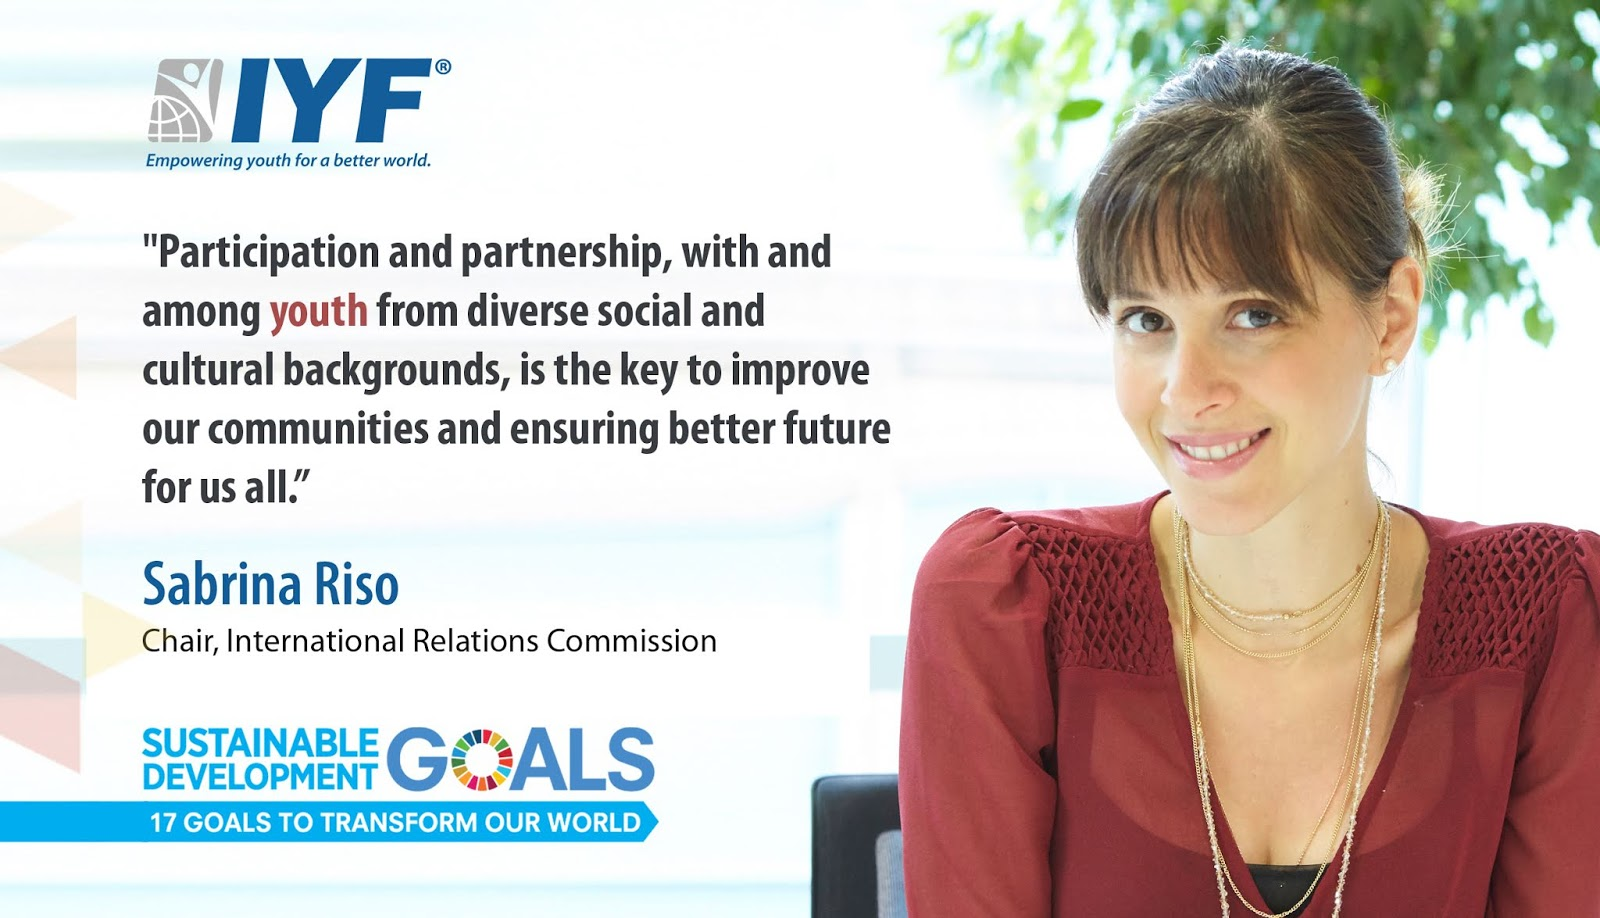 Sabrina Riso, IYF Chair of International Relations Commission